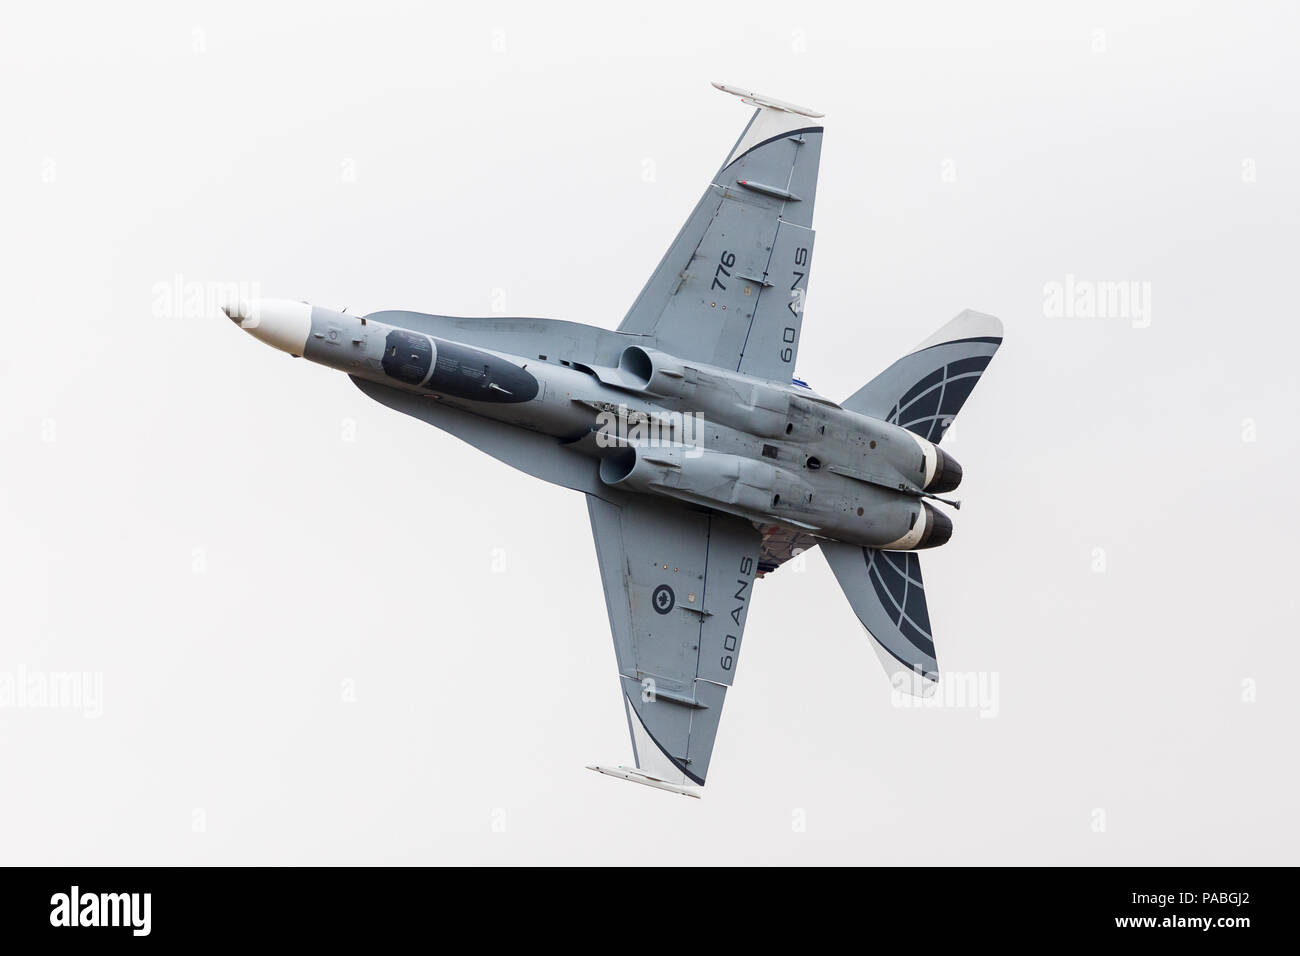 Royal Canadian Air Force CF-18 Hornet pictured at the 2018 Royal International Air Tattoo at RAF Fairford in Gloucestershire. Stock Photo